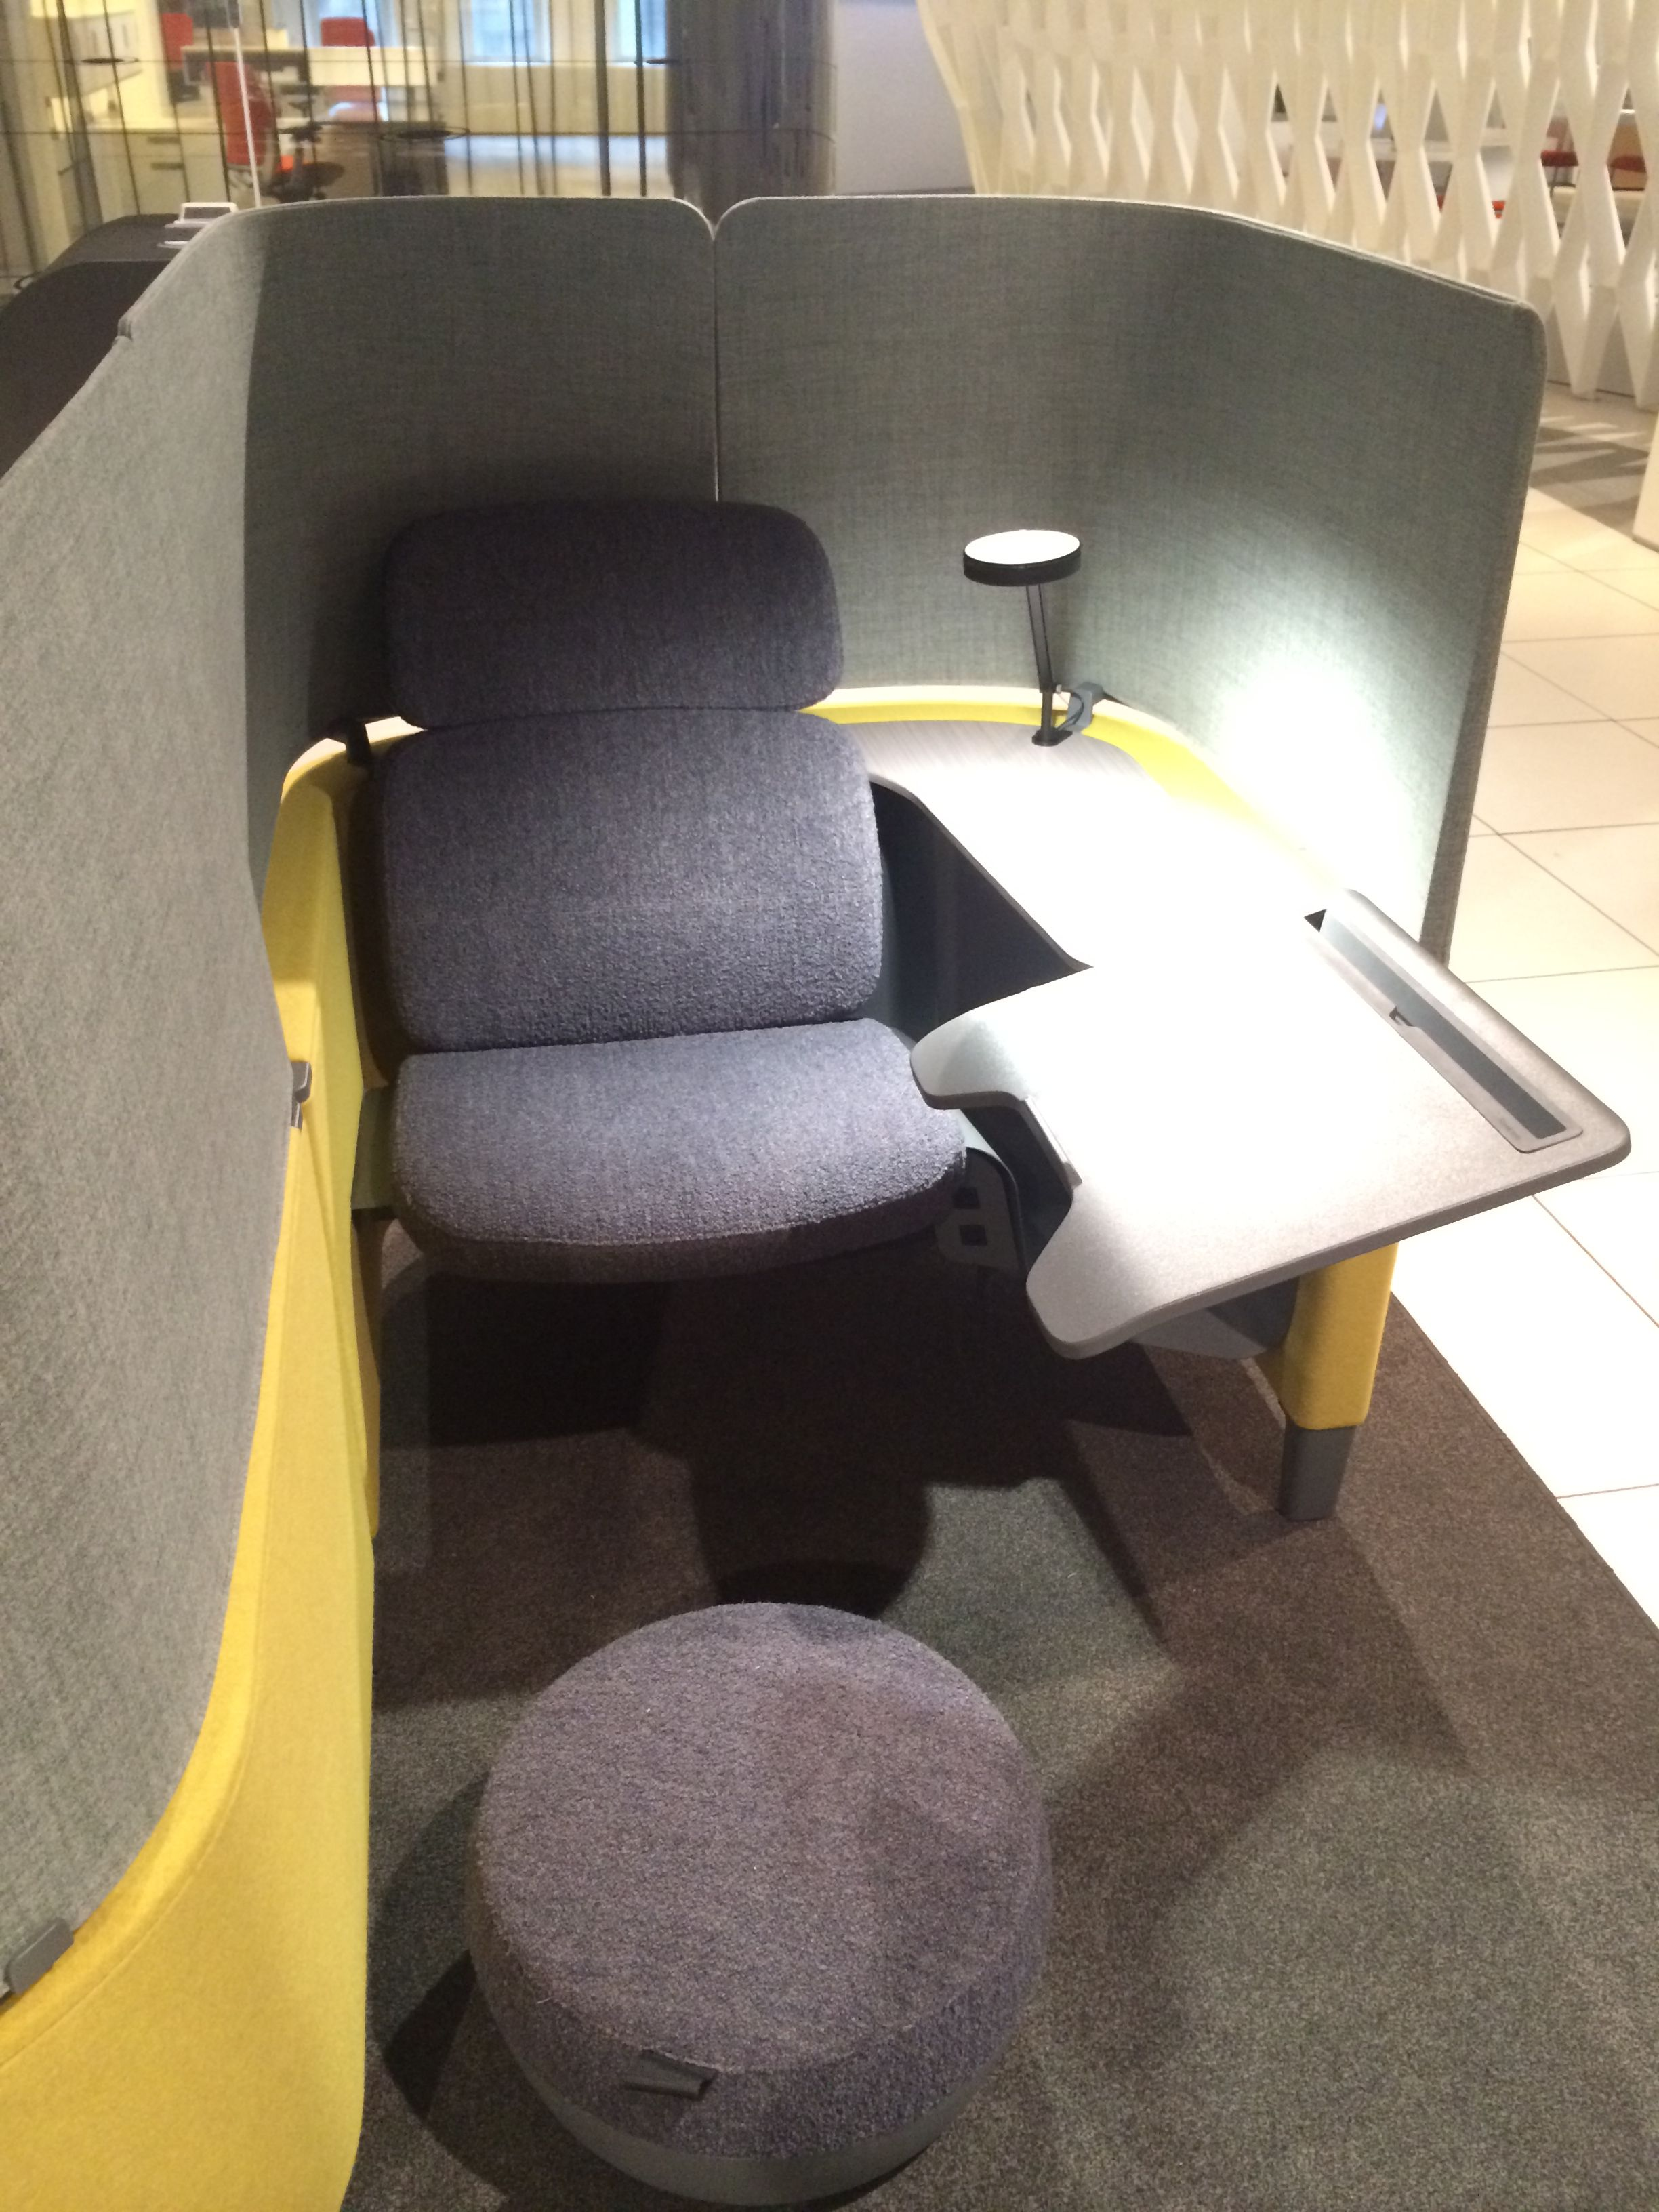 The Brody Lounge From Steelcase Was A Big Hit A New